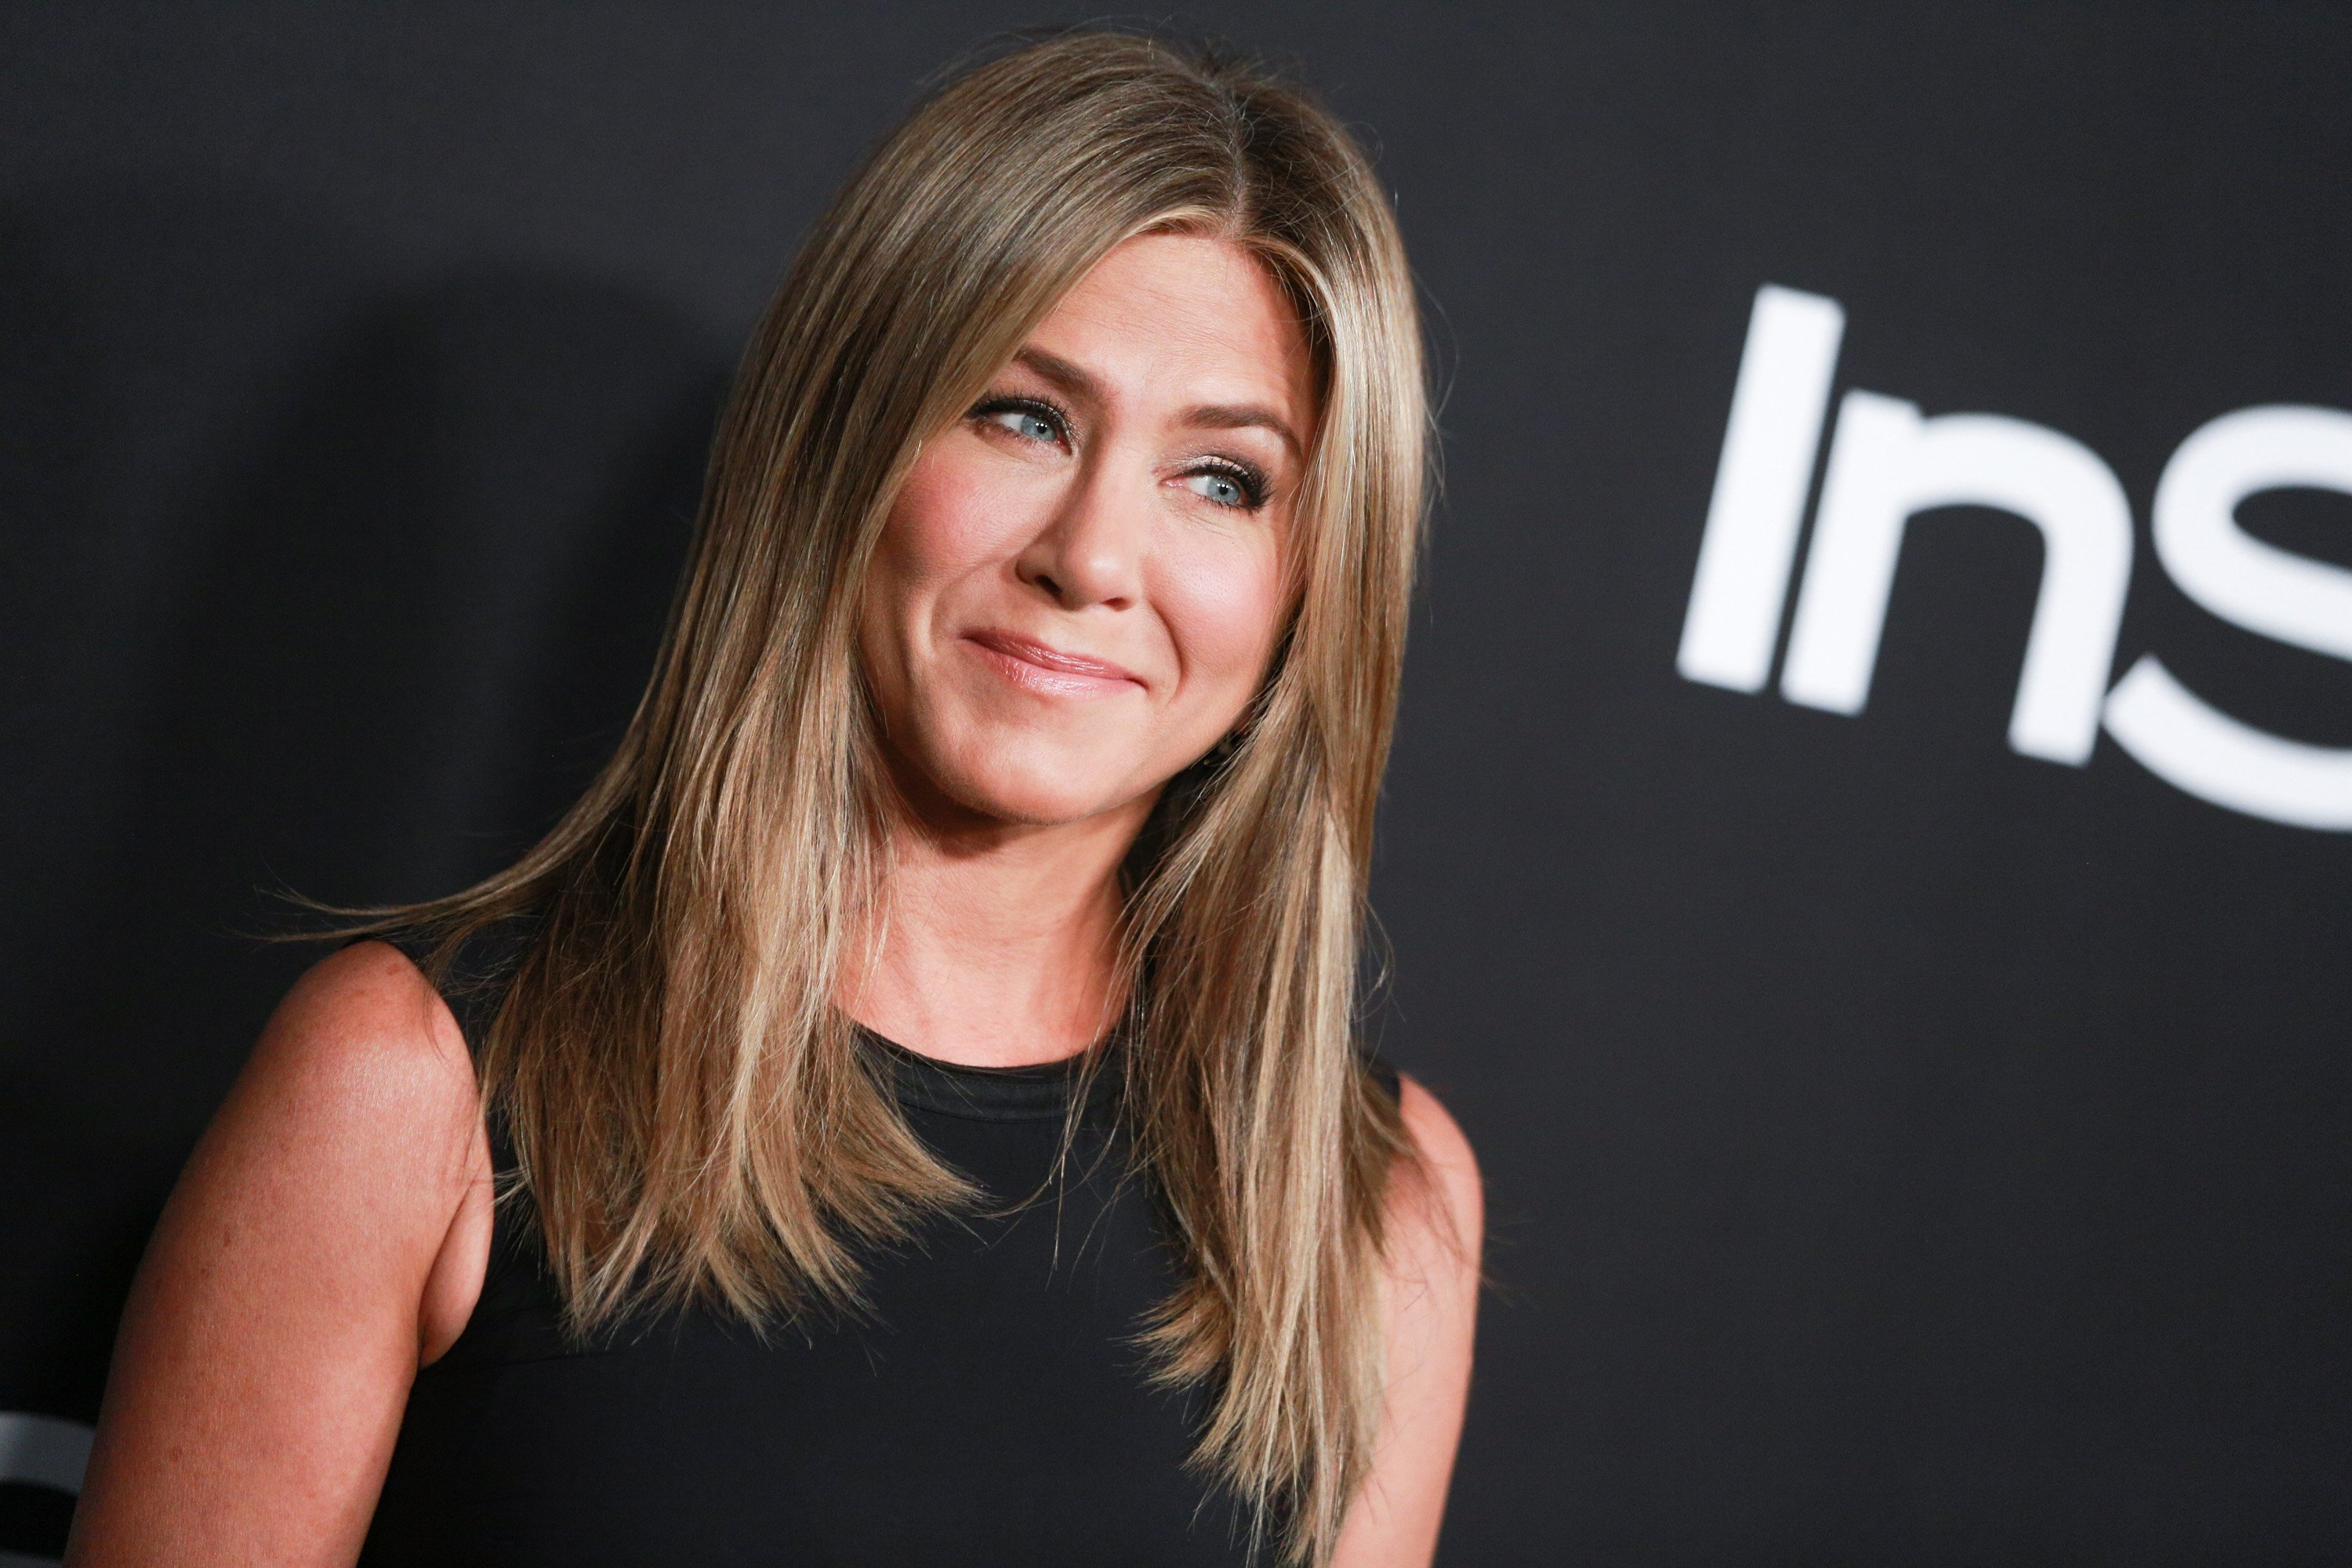 Jennifer Aniston at the 2018 InStyle Awards on October 22, 2018 in Los Angeles, California. | Photo: Getty Images